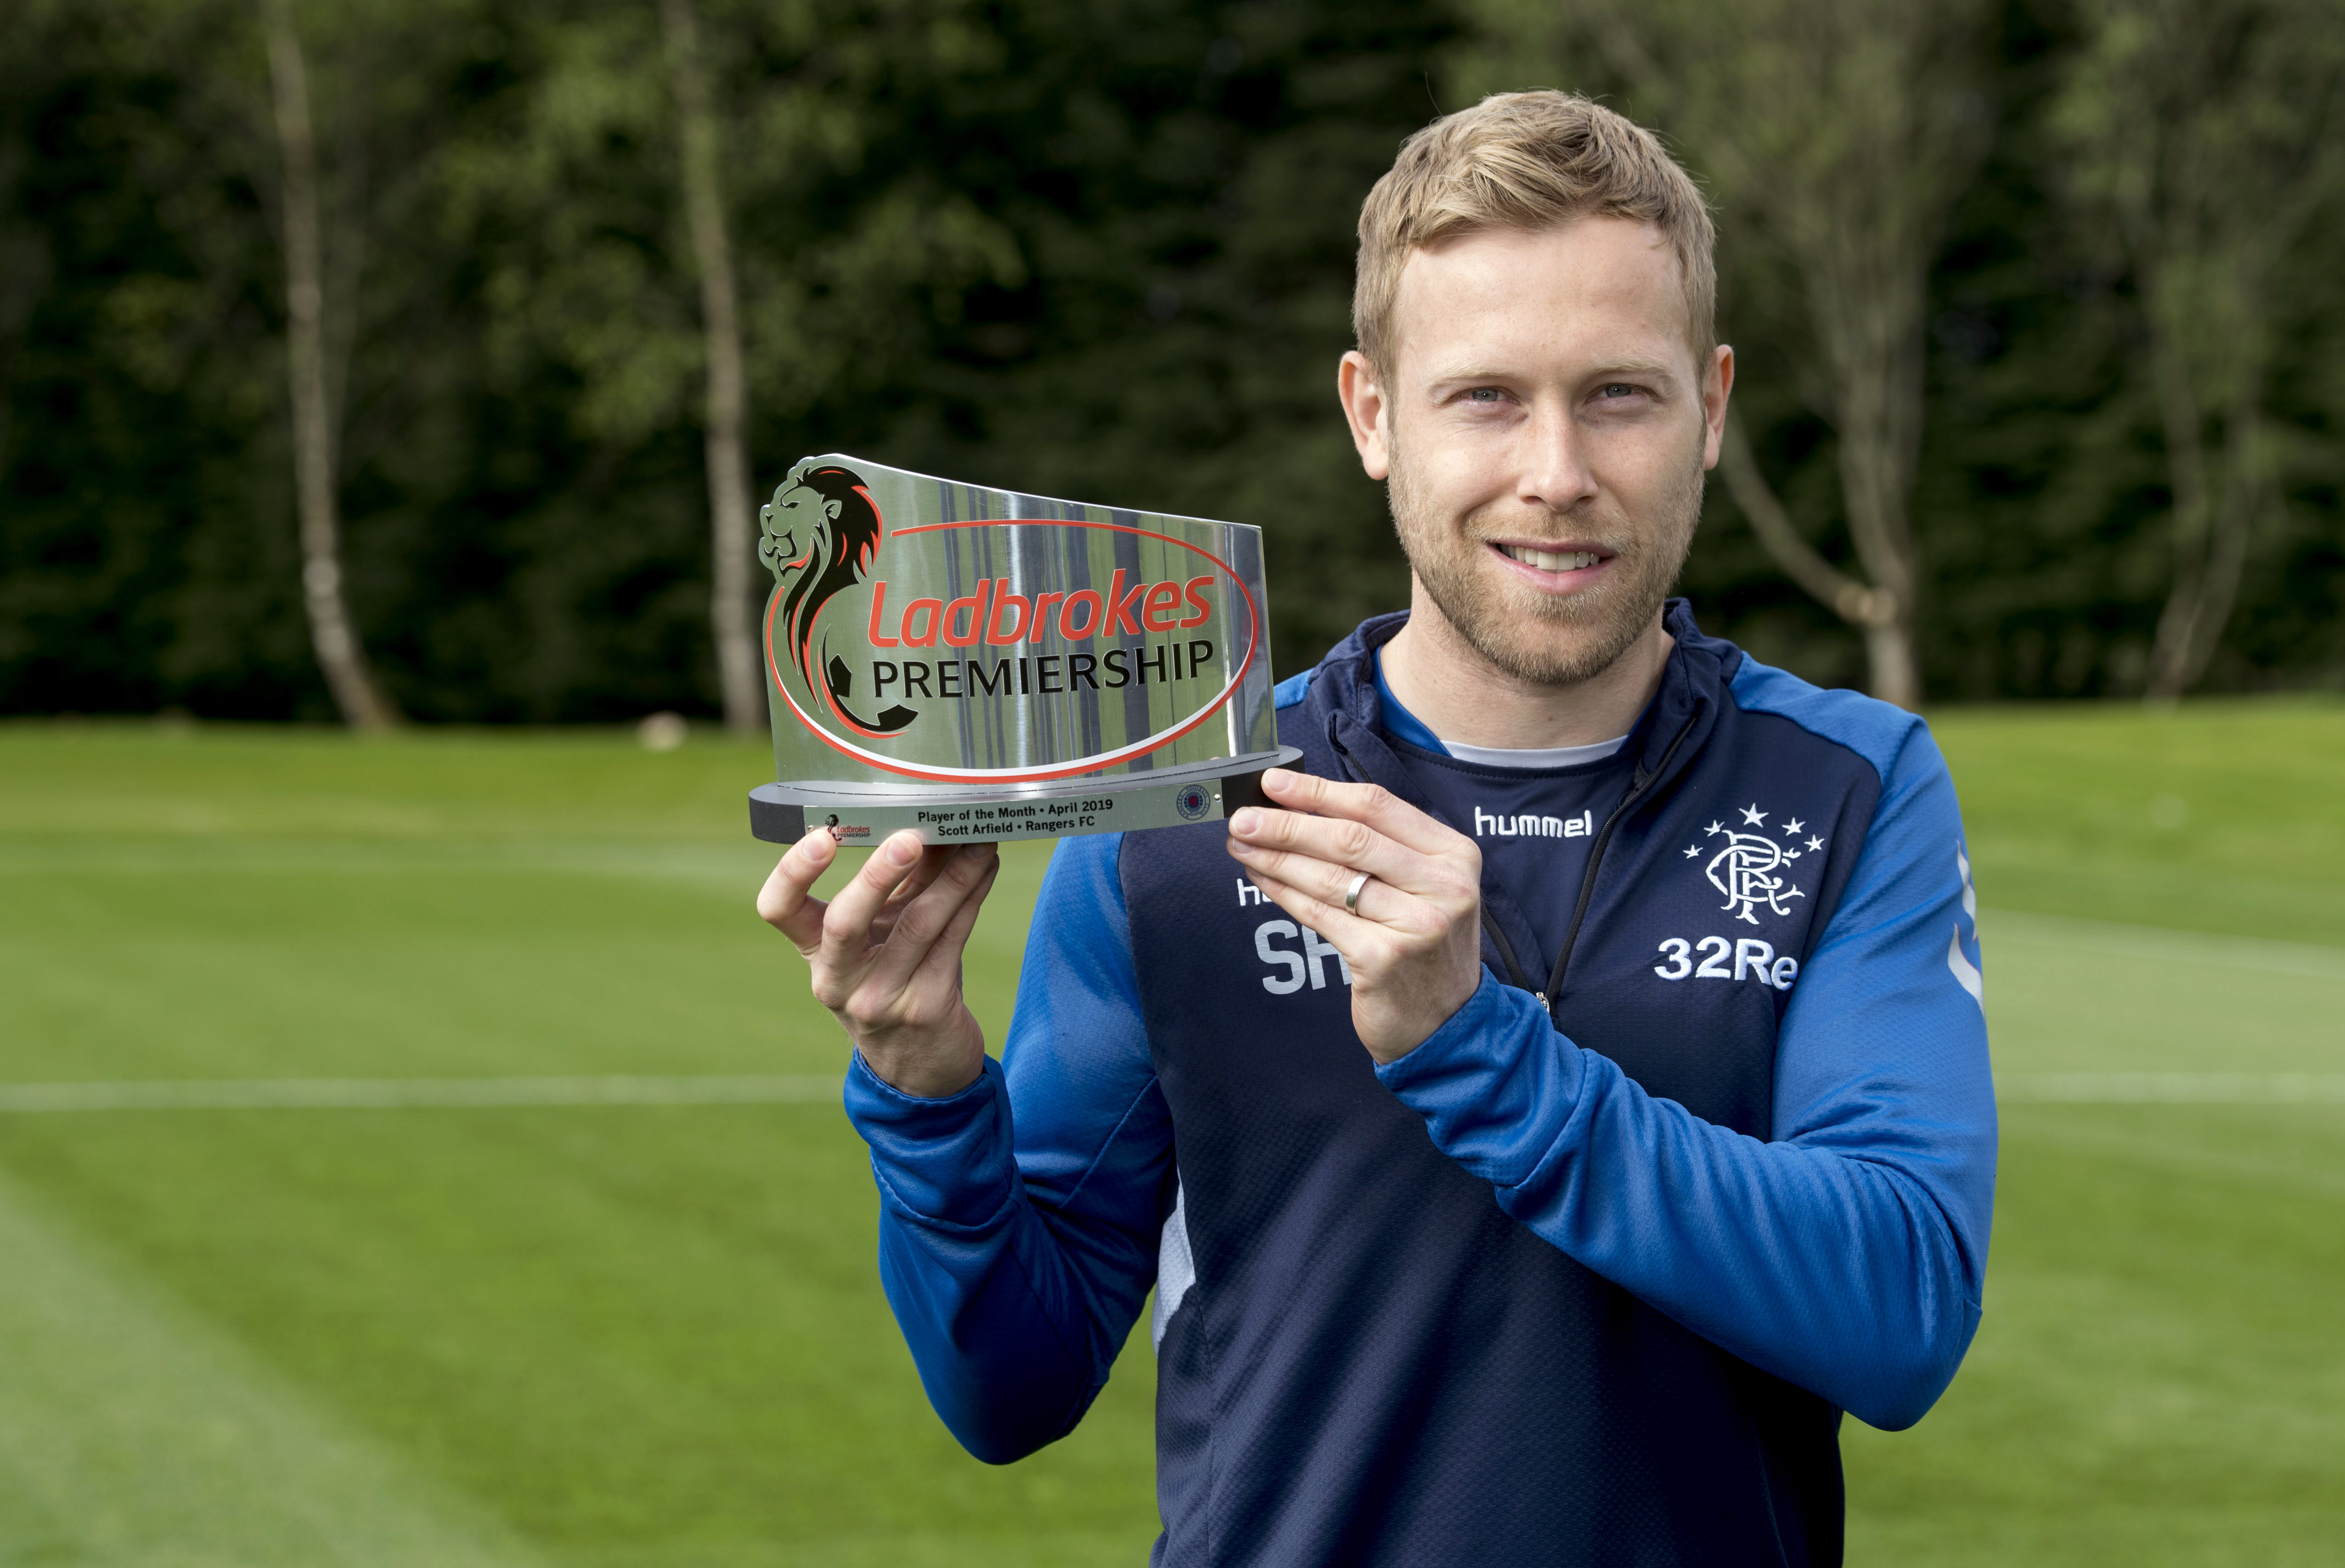 Rangers' Scott Arfield pictured after winning the Ladbrokes Premiership Player of the Month award for April